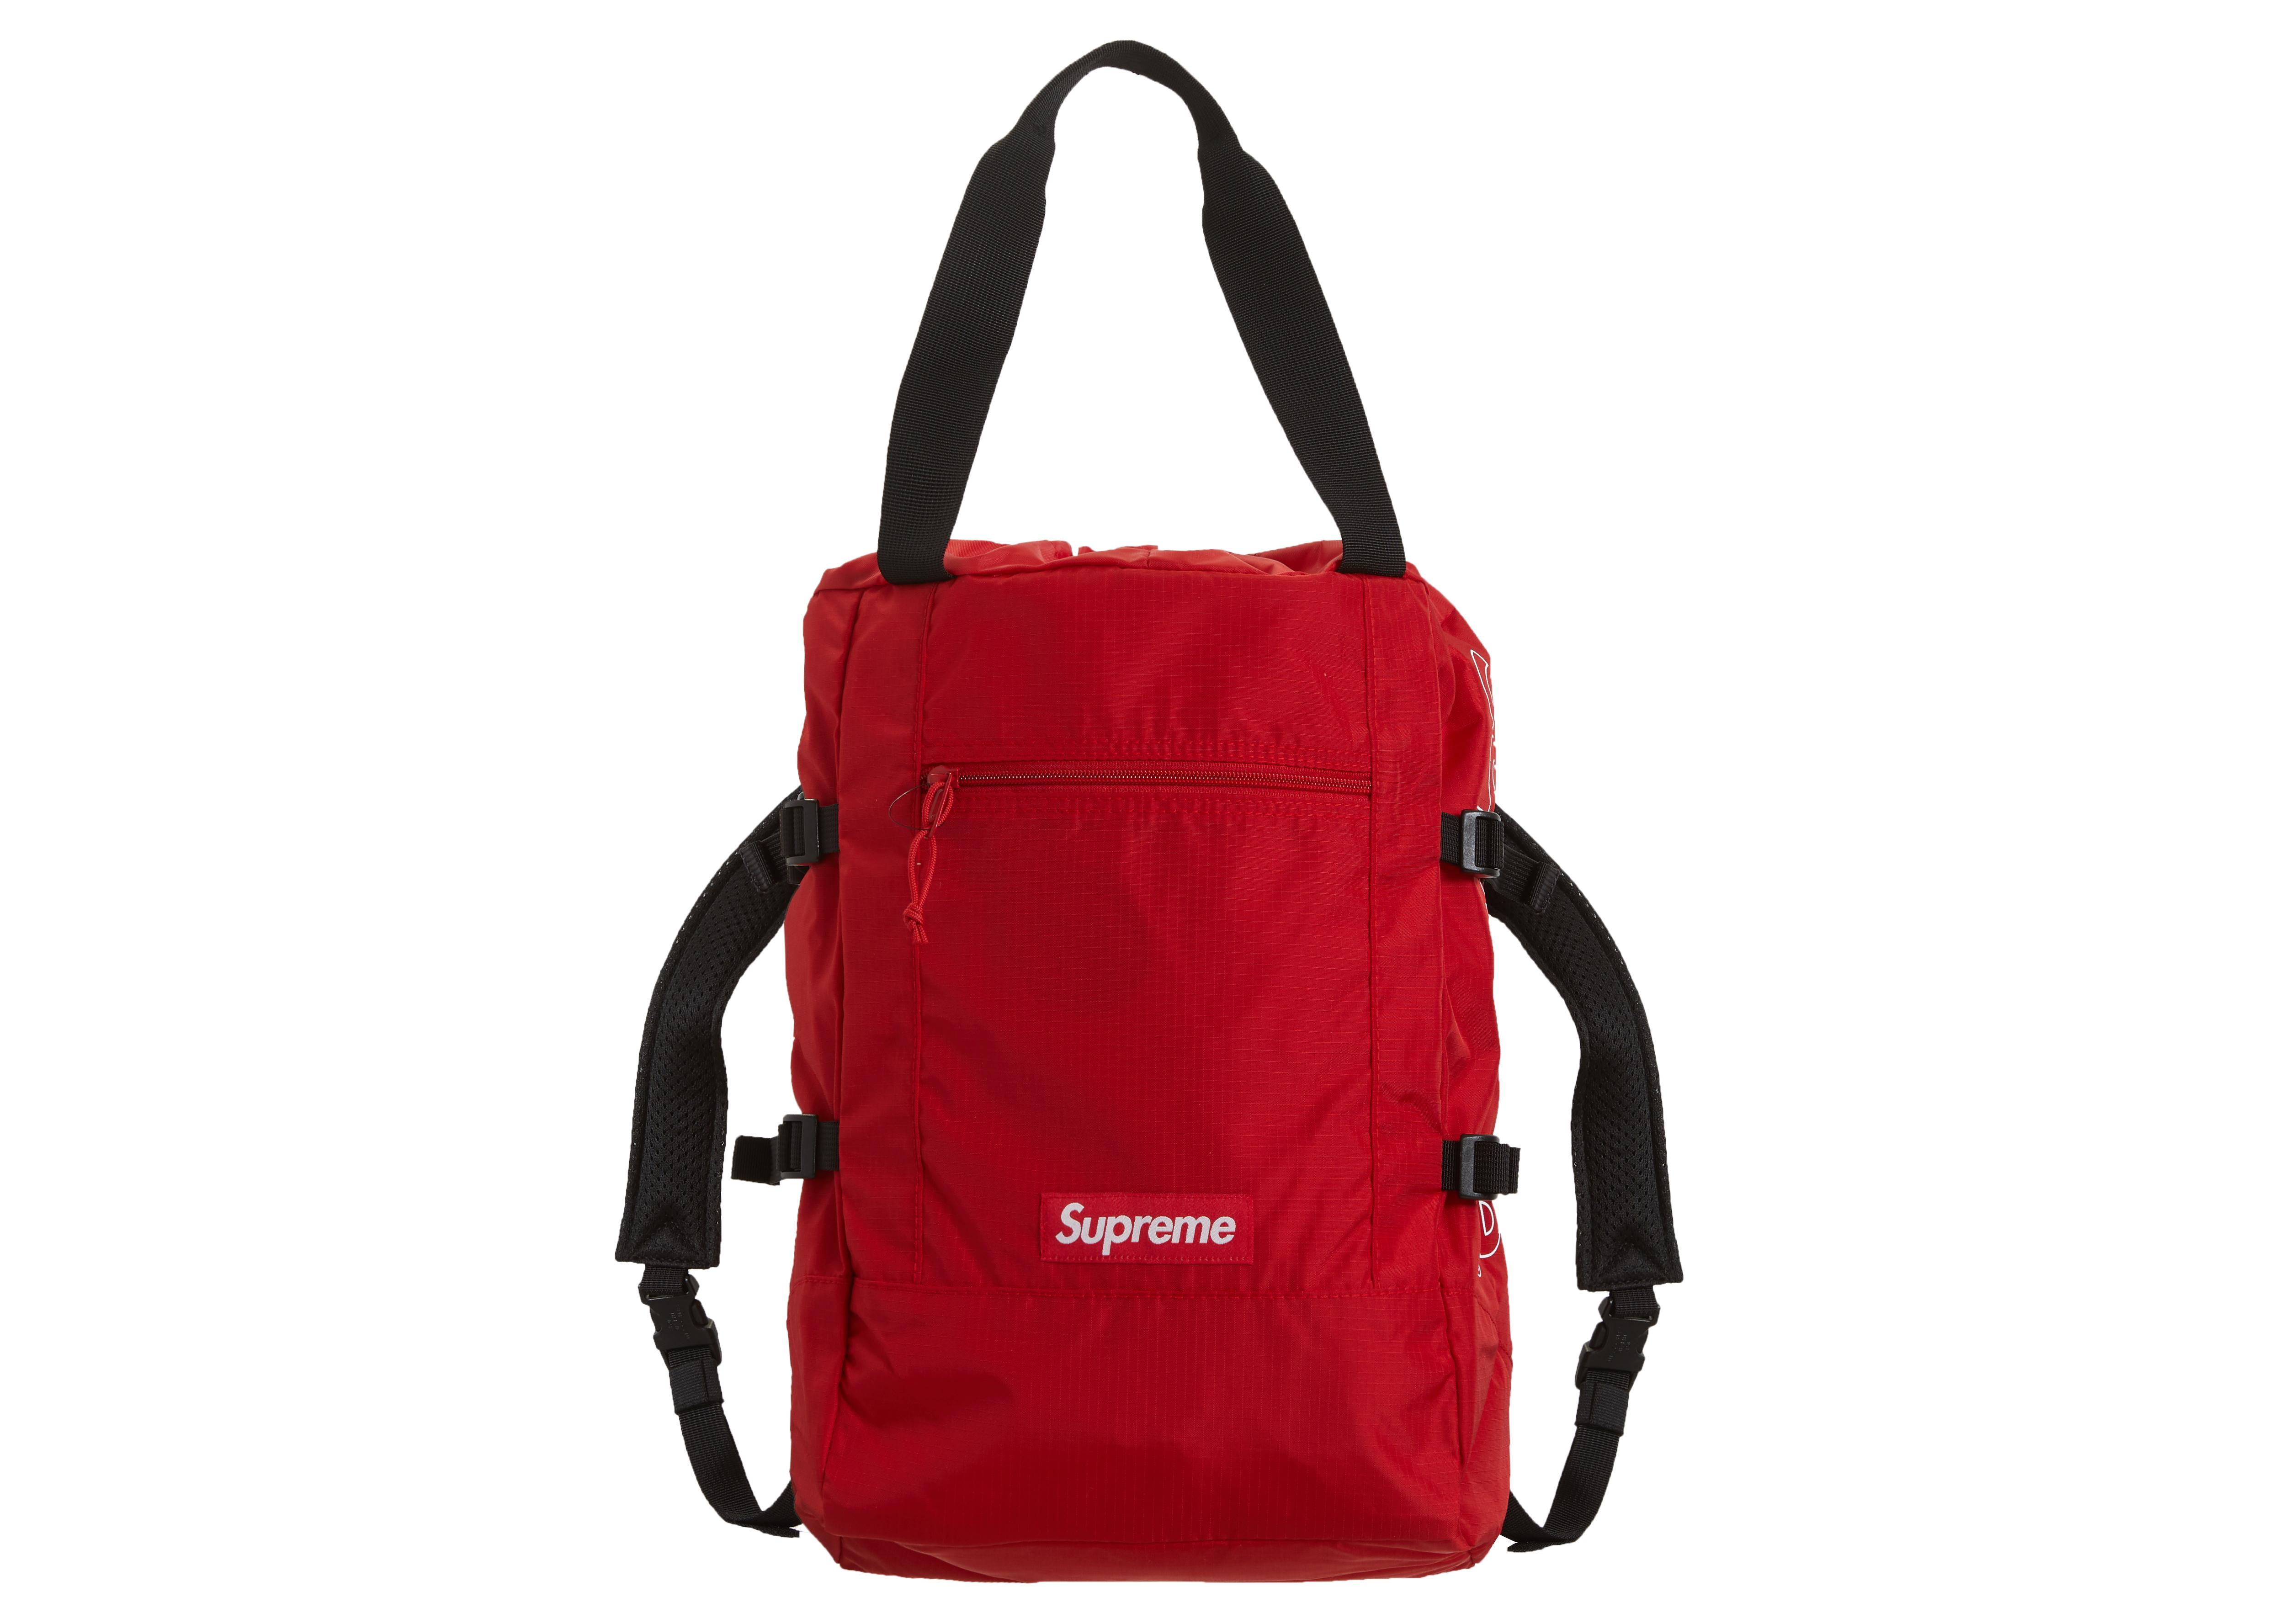 be20a95e Supreme Tote Backpack Red in Red - Lyst